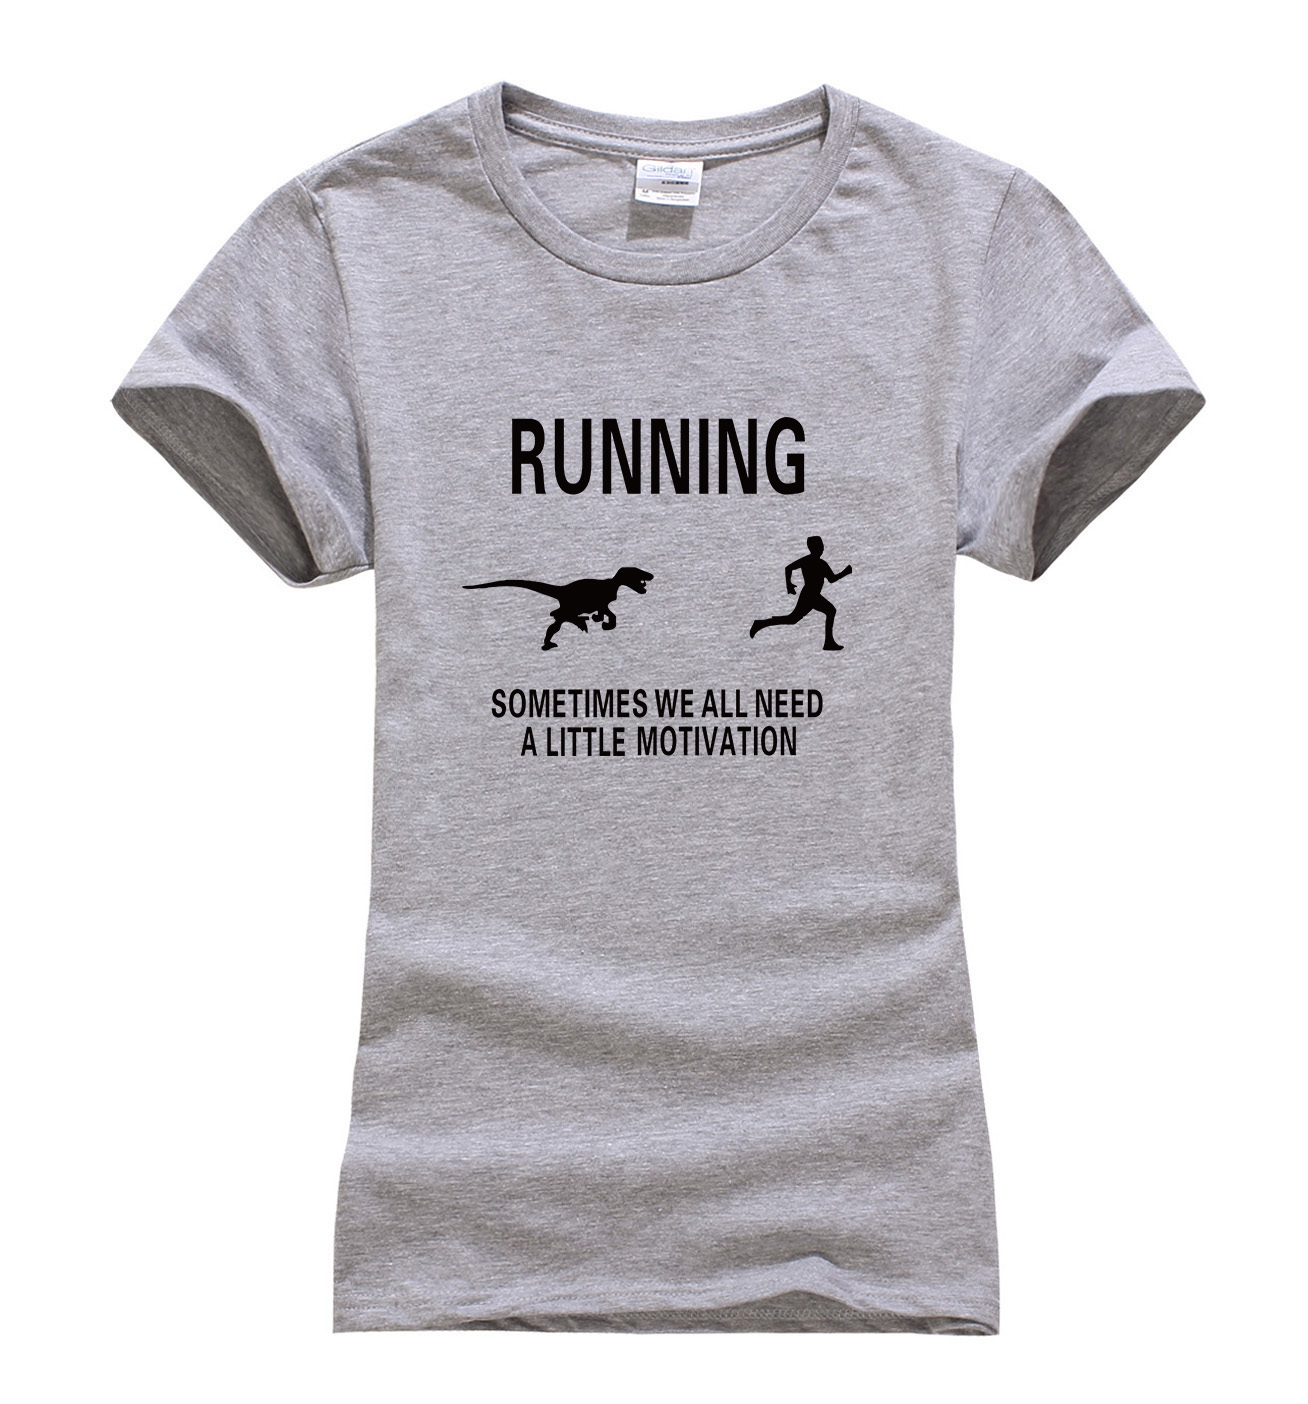 c60d786205 2017 Summer fitness fashion Motivate Runners print t shirt Women .